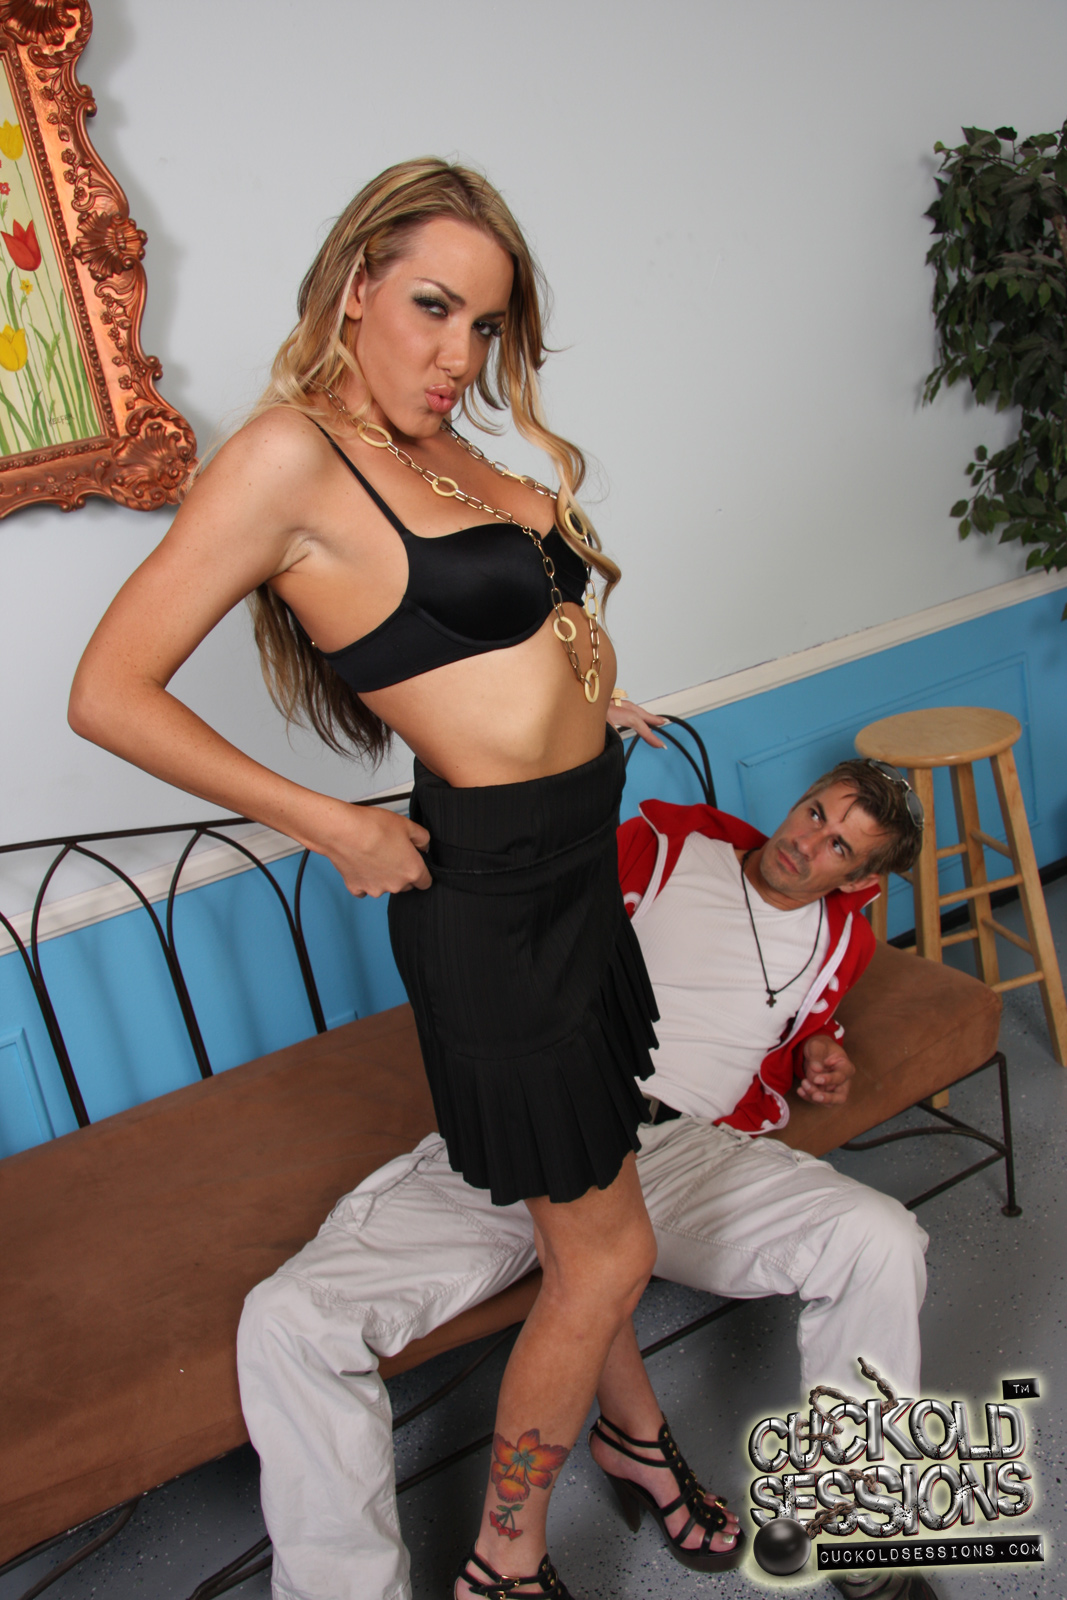 Cuckold Sessions / Audrey Elson